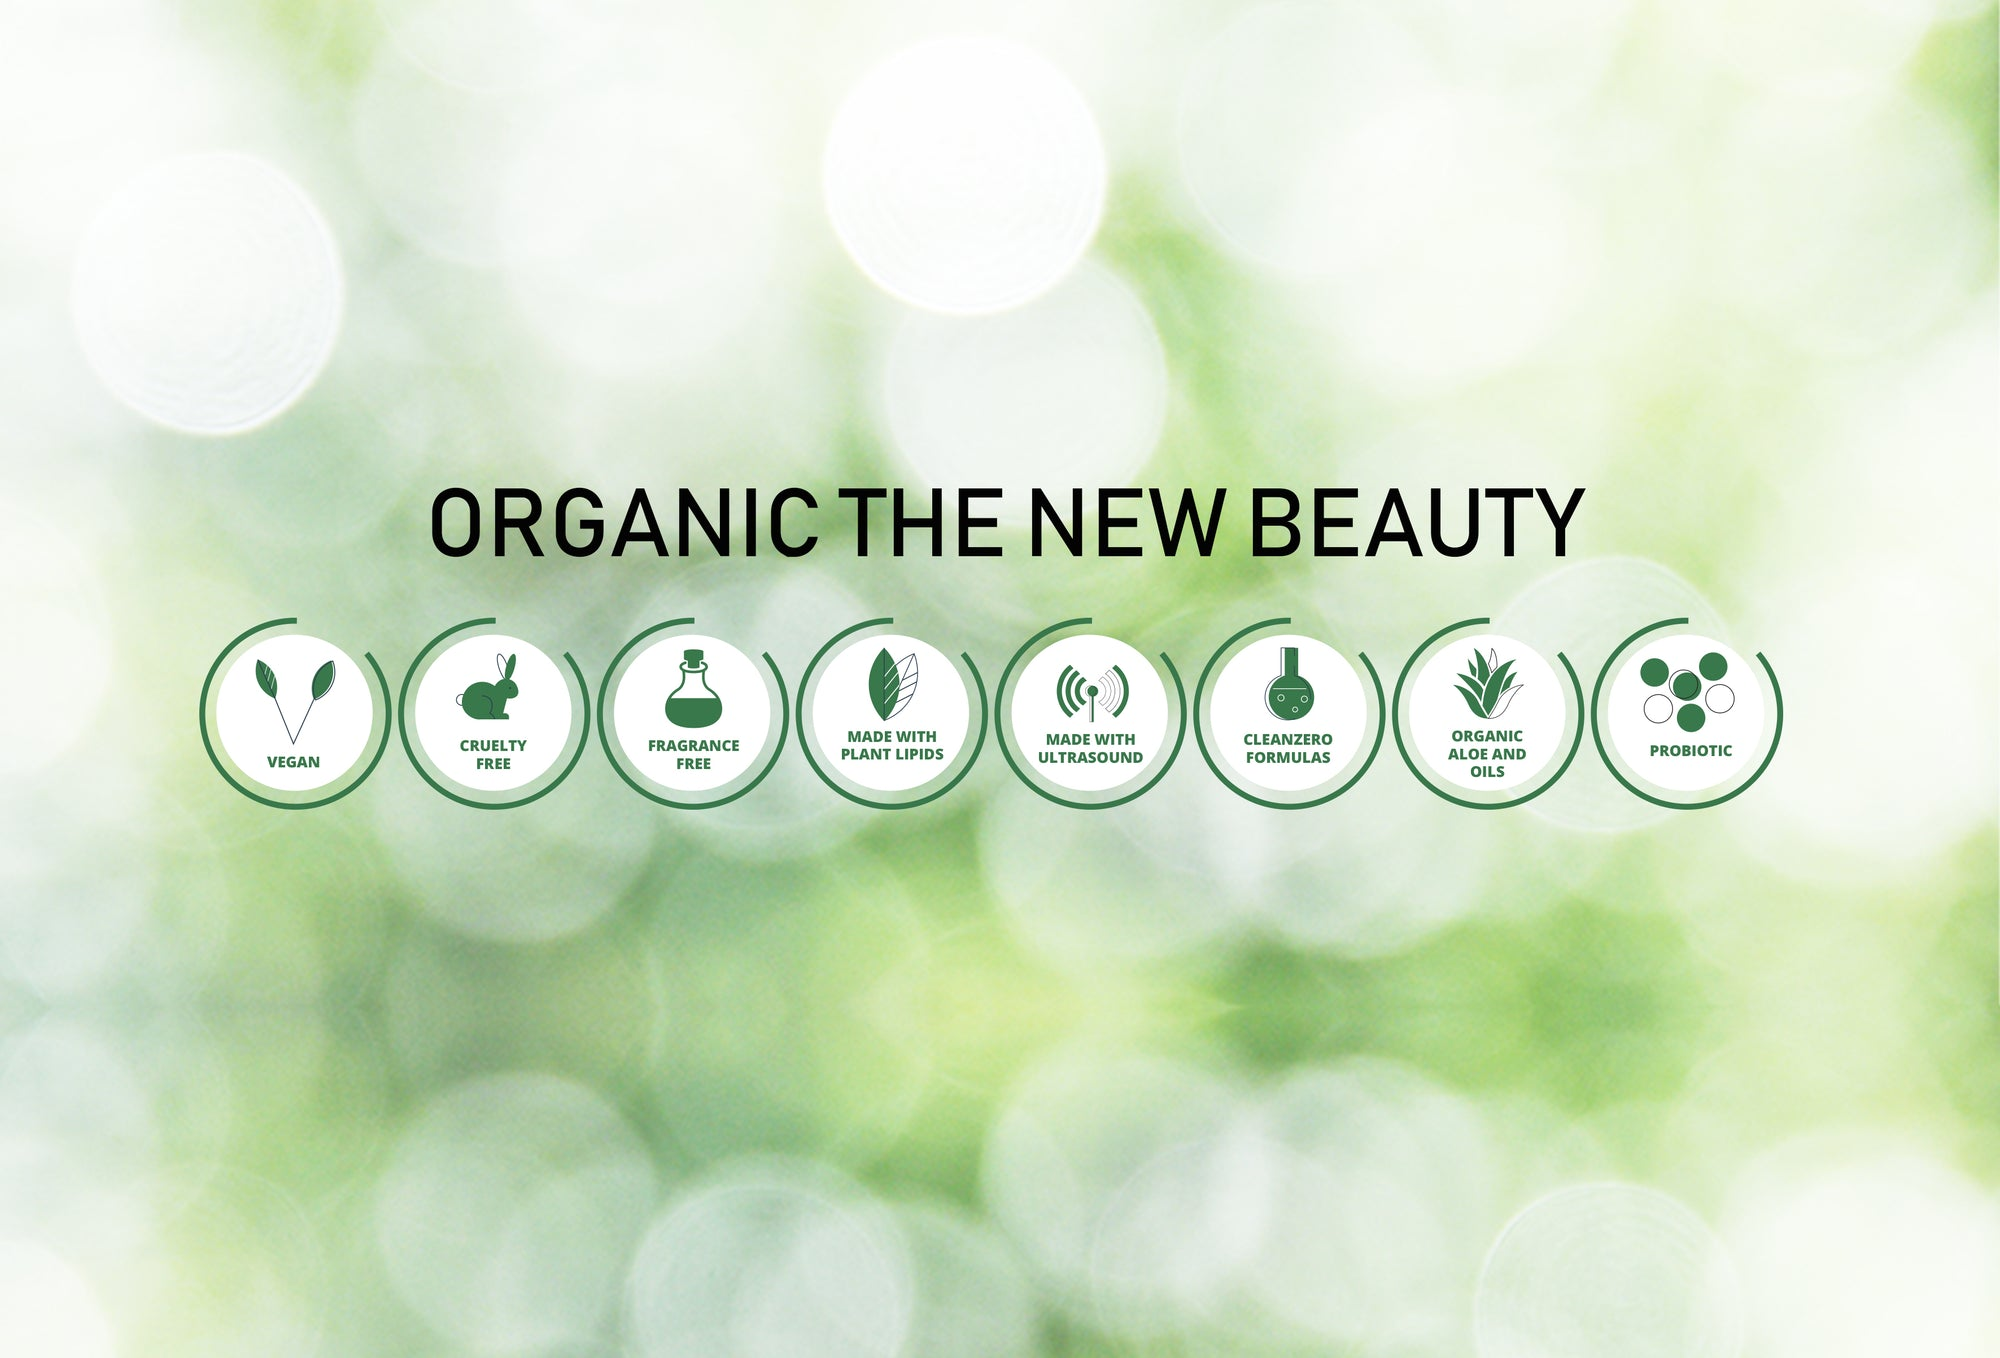 ORGANIC THE NEW BEAUTY